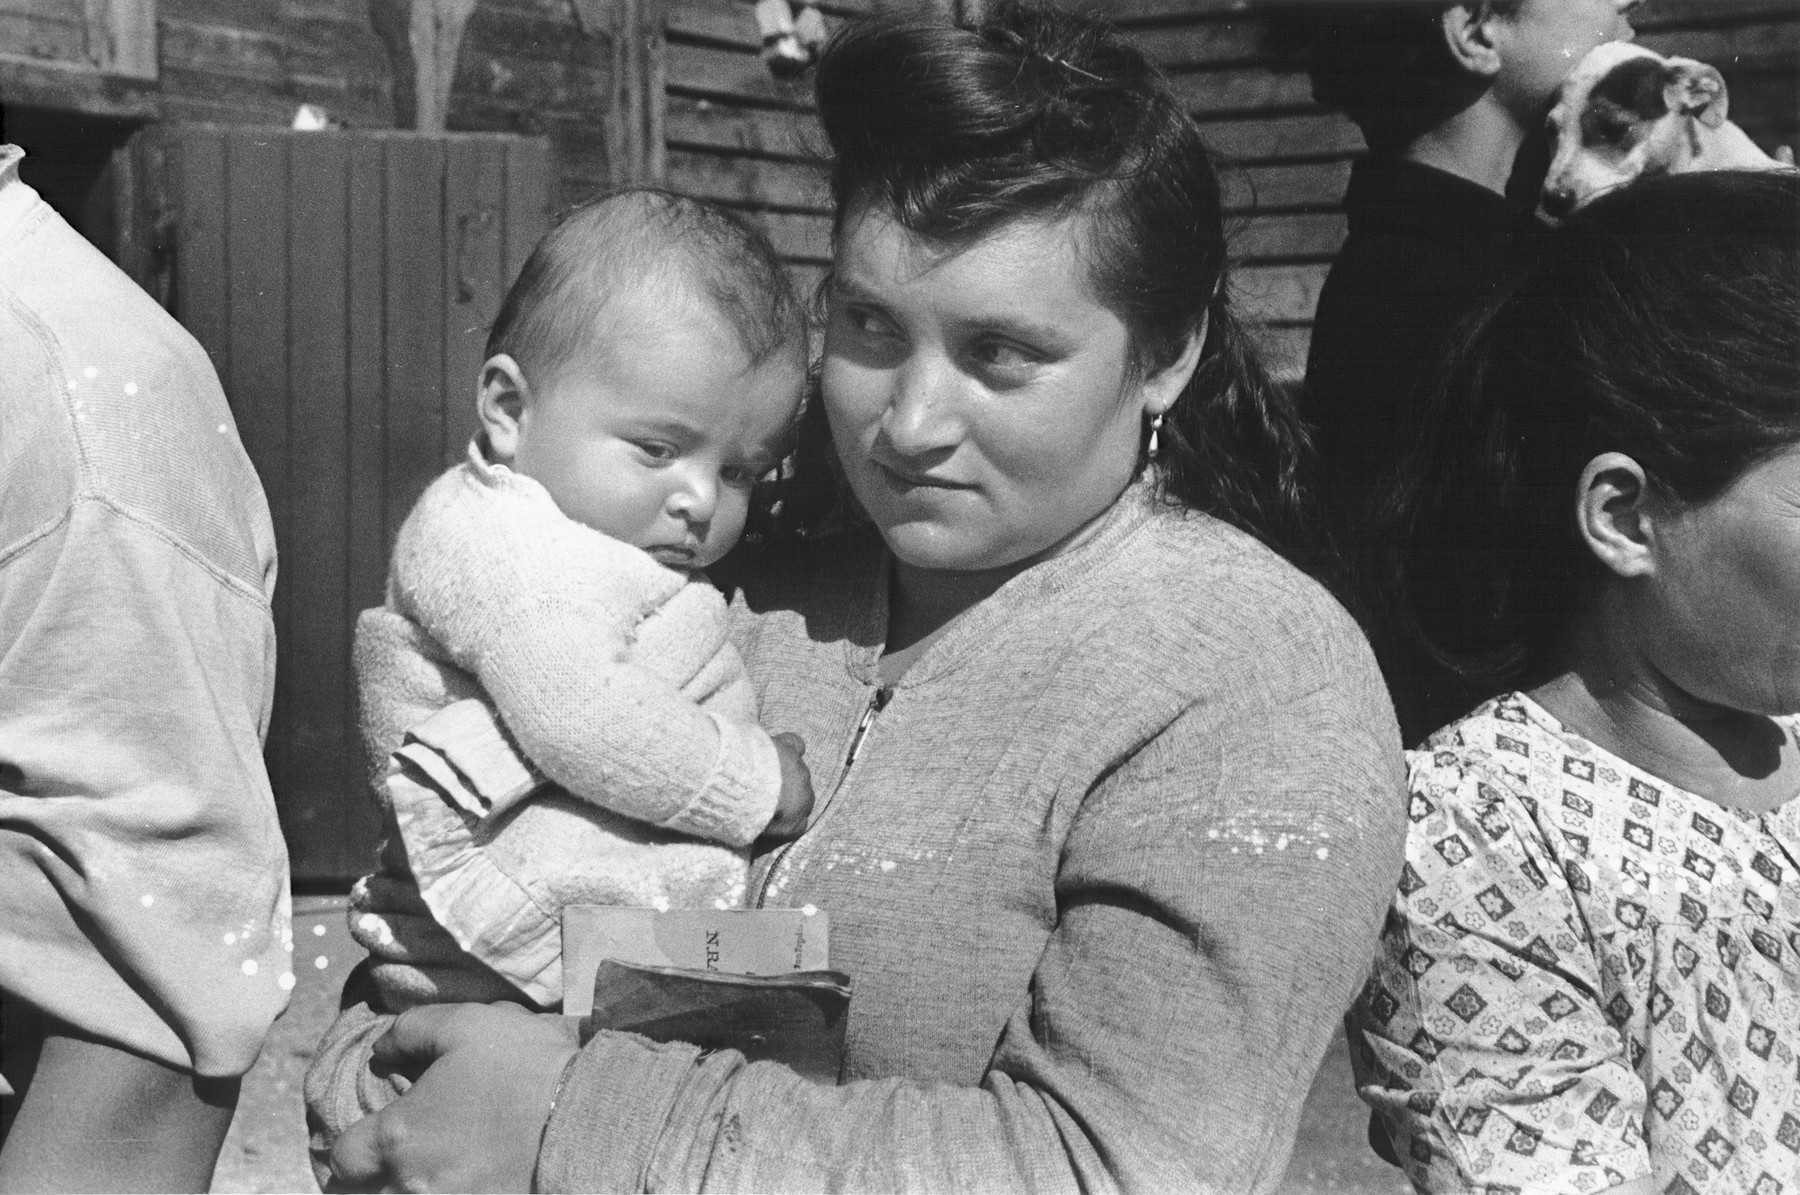 A Jewish DP mother holds her infant while waiting in line outside a barracks to register with IRO (International Refugee Organization) officials.